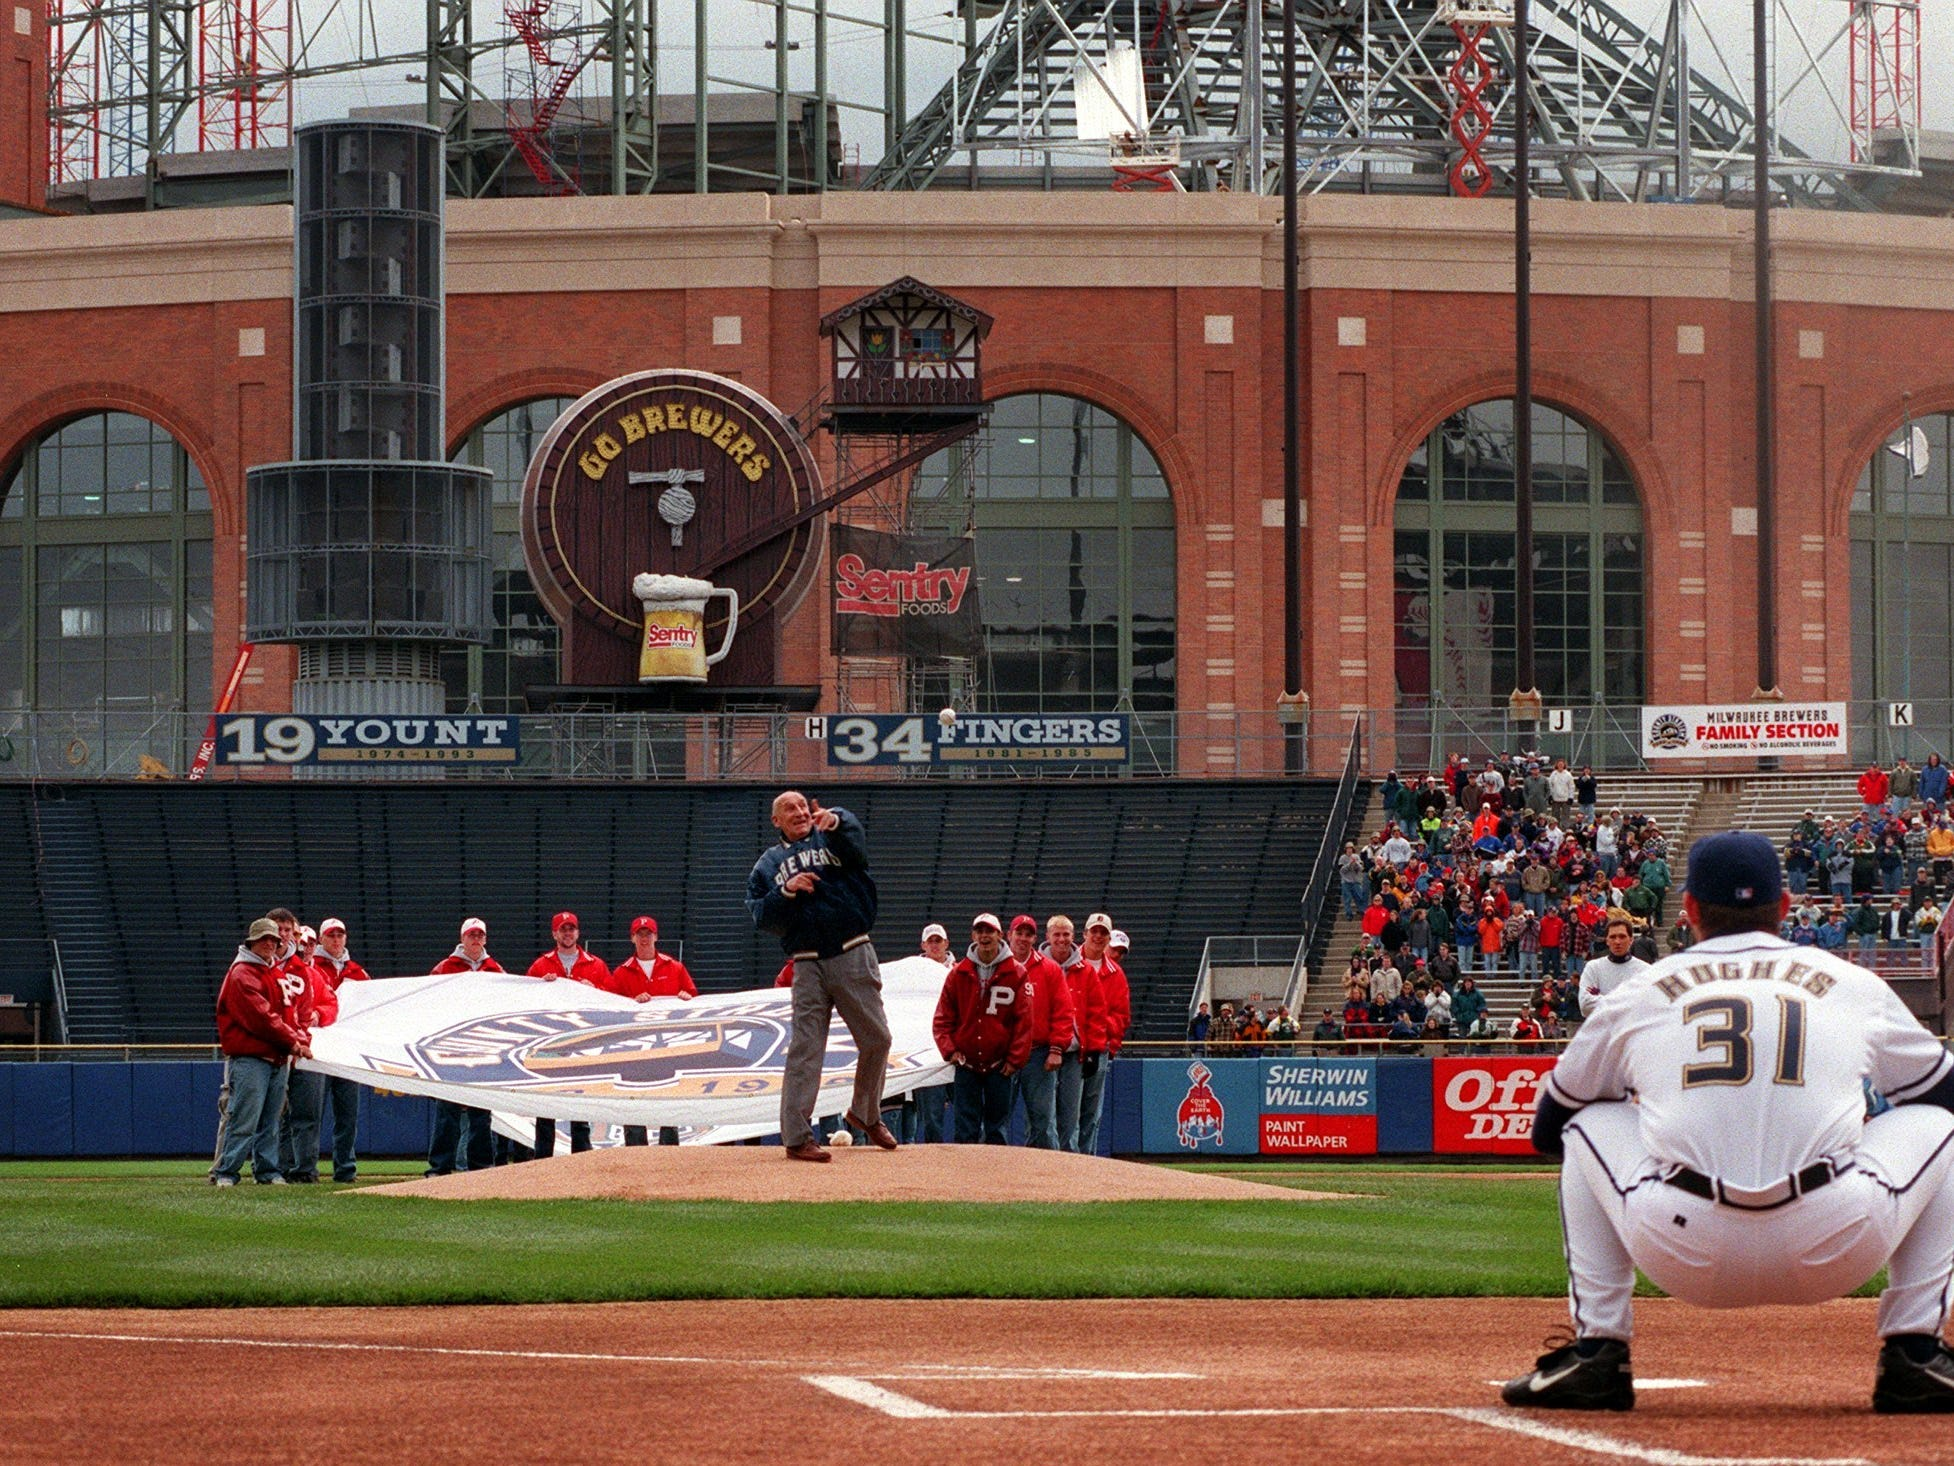 Baseball Hall of Famer Warren Spahn throws out the ceremonial first pitch with Miller Park in the background. The Brewers lost their home opener, 9-4, to the the Chicago Cubs Friday April 16, 1999.